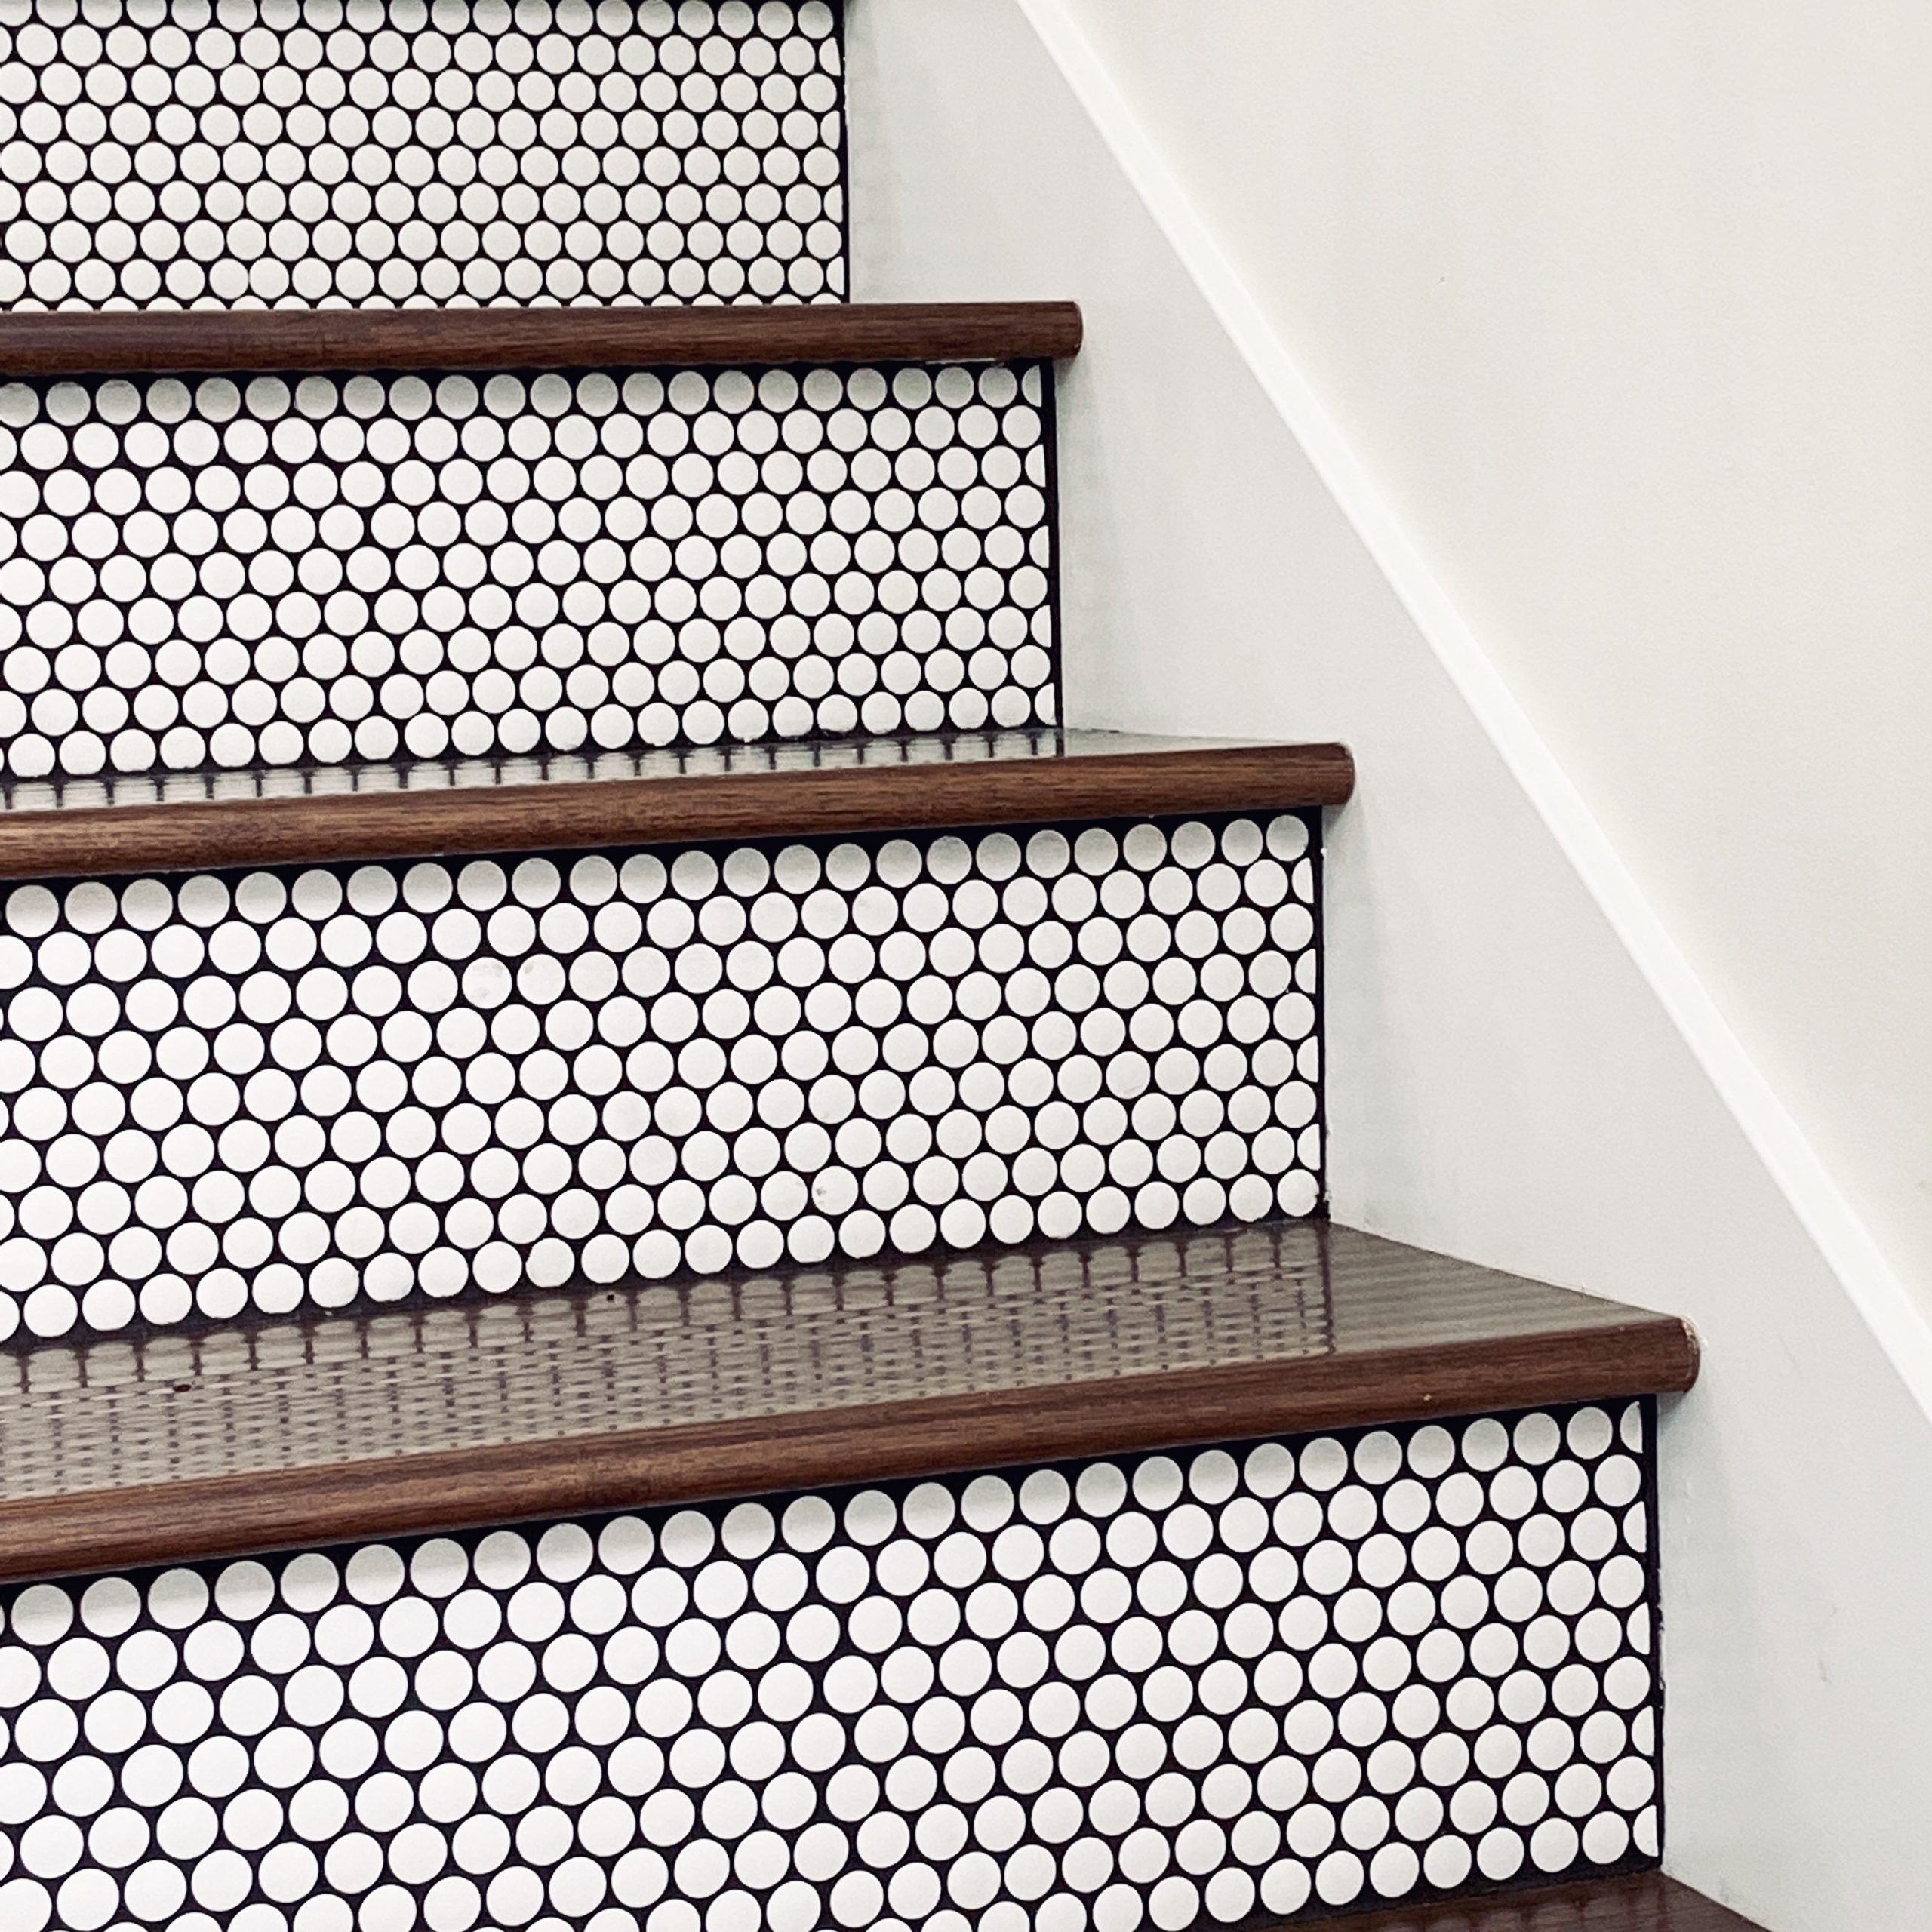 AirBnB MCM Penny Tile Staircase Design - The Phinery Interior Design Studio Seattle